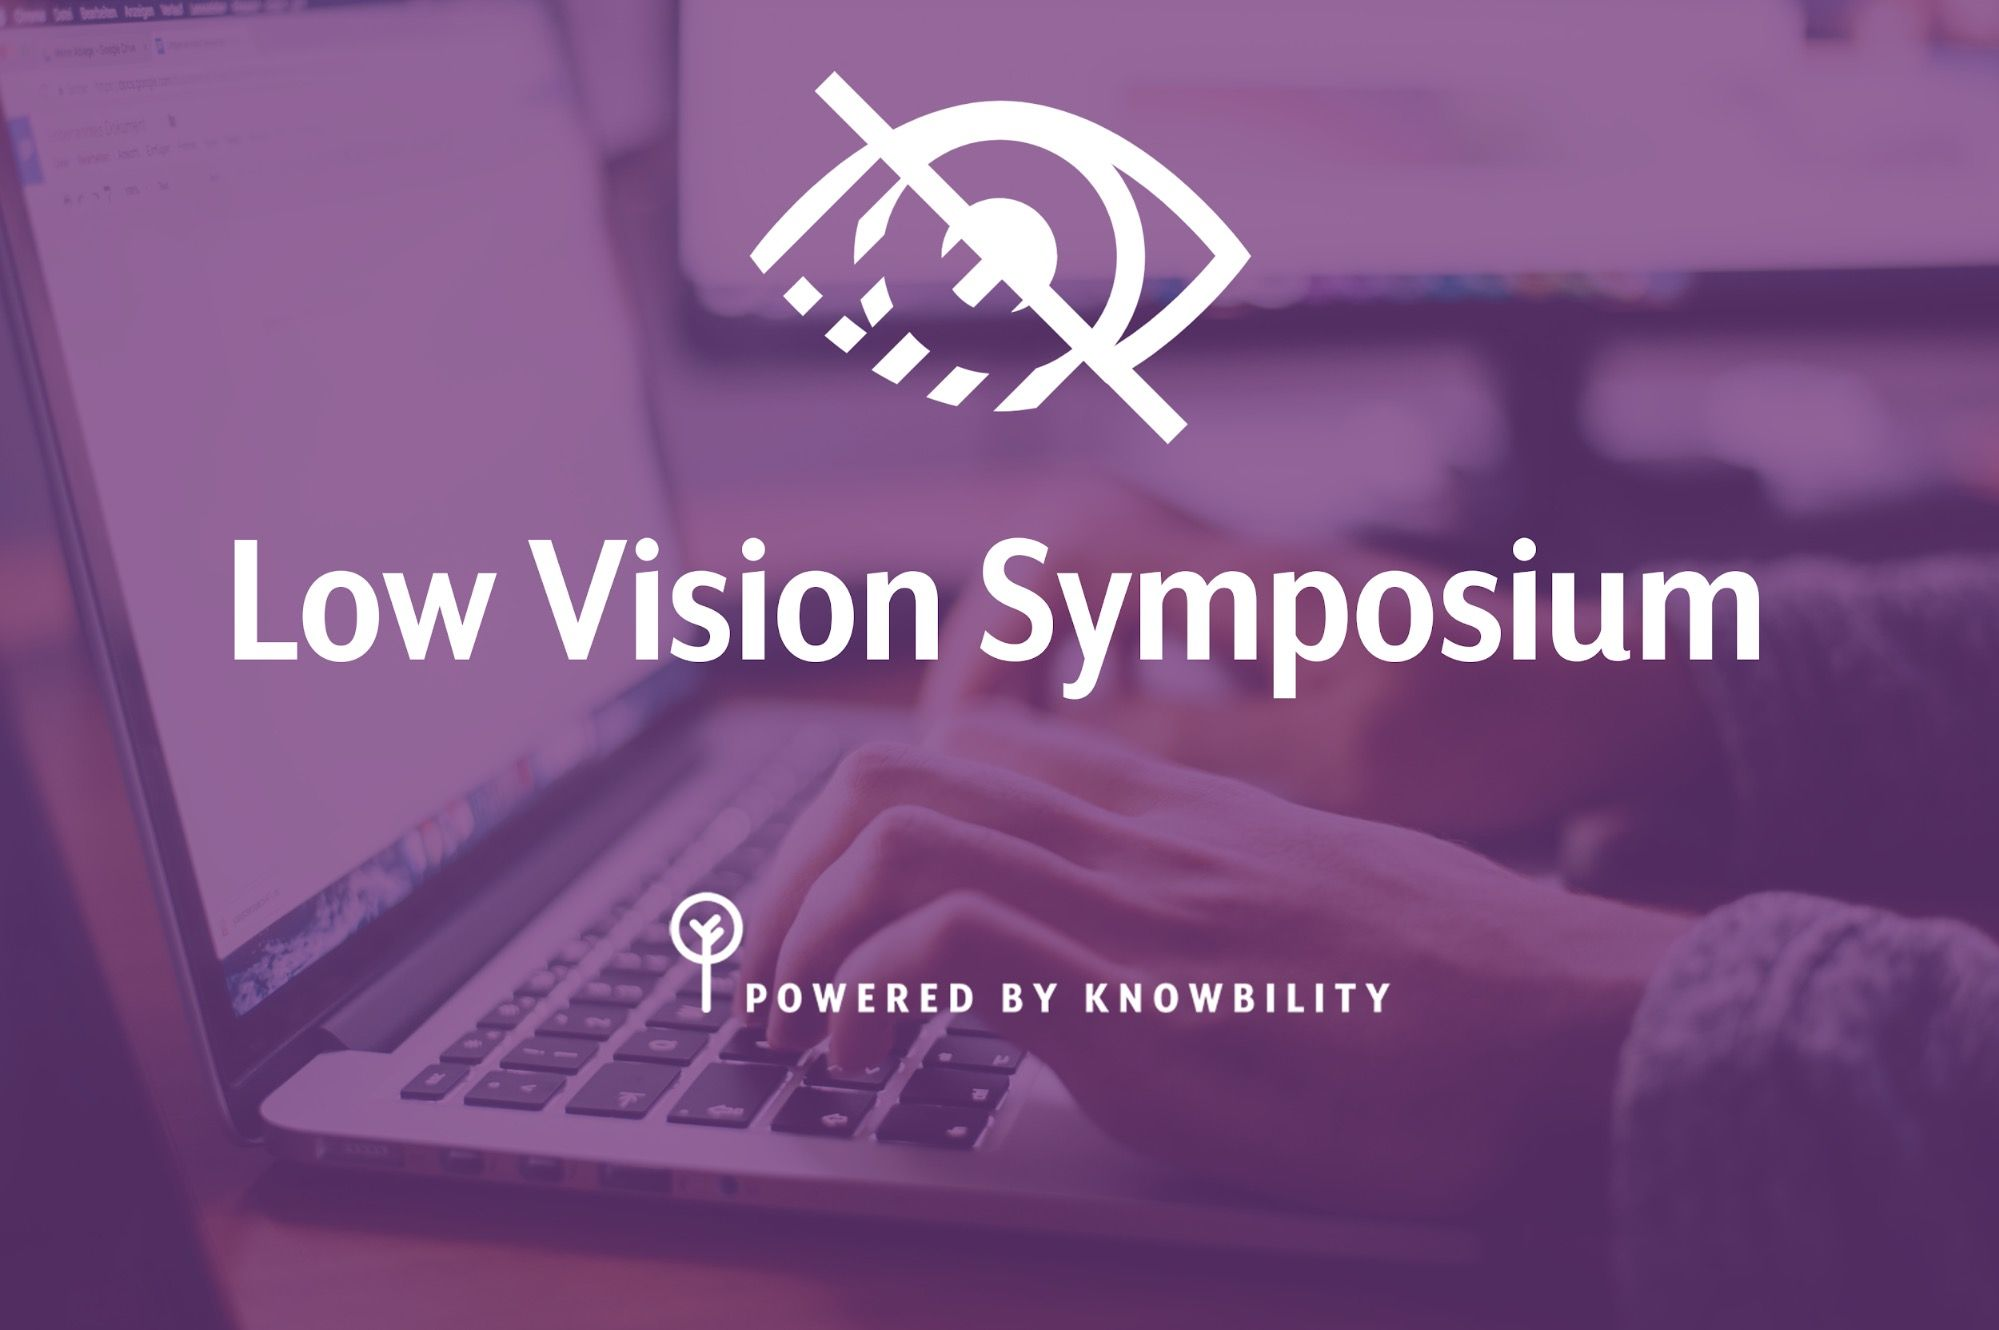 Low vision symposium. Powered by knowbility.